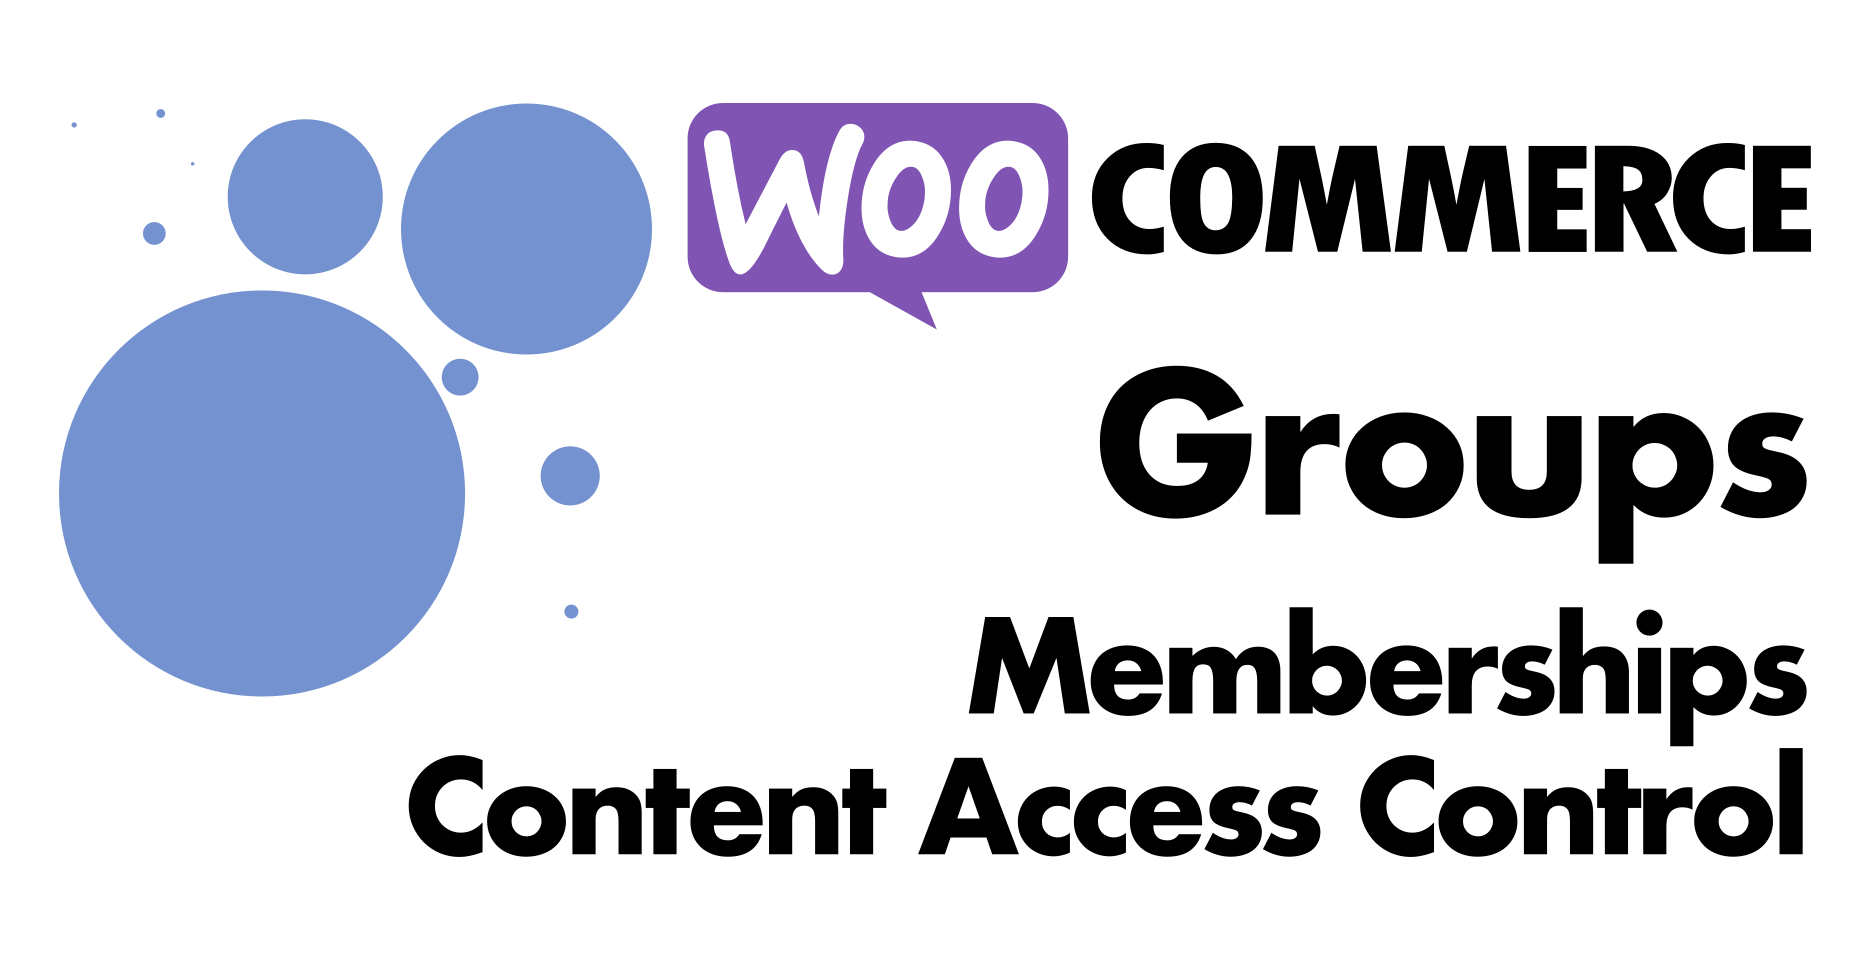 Groups for WooCommerce 1.24.0